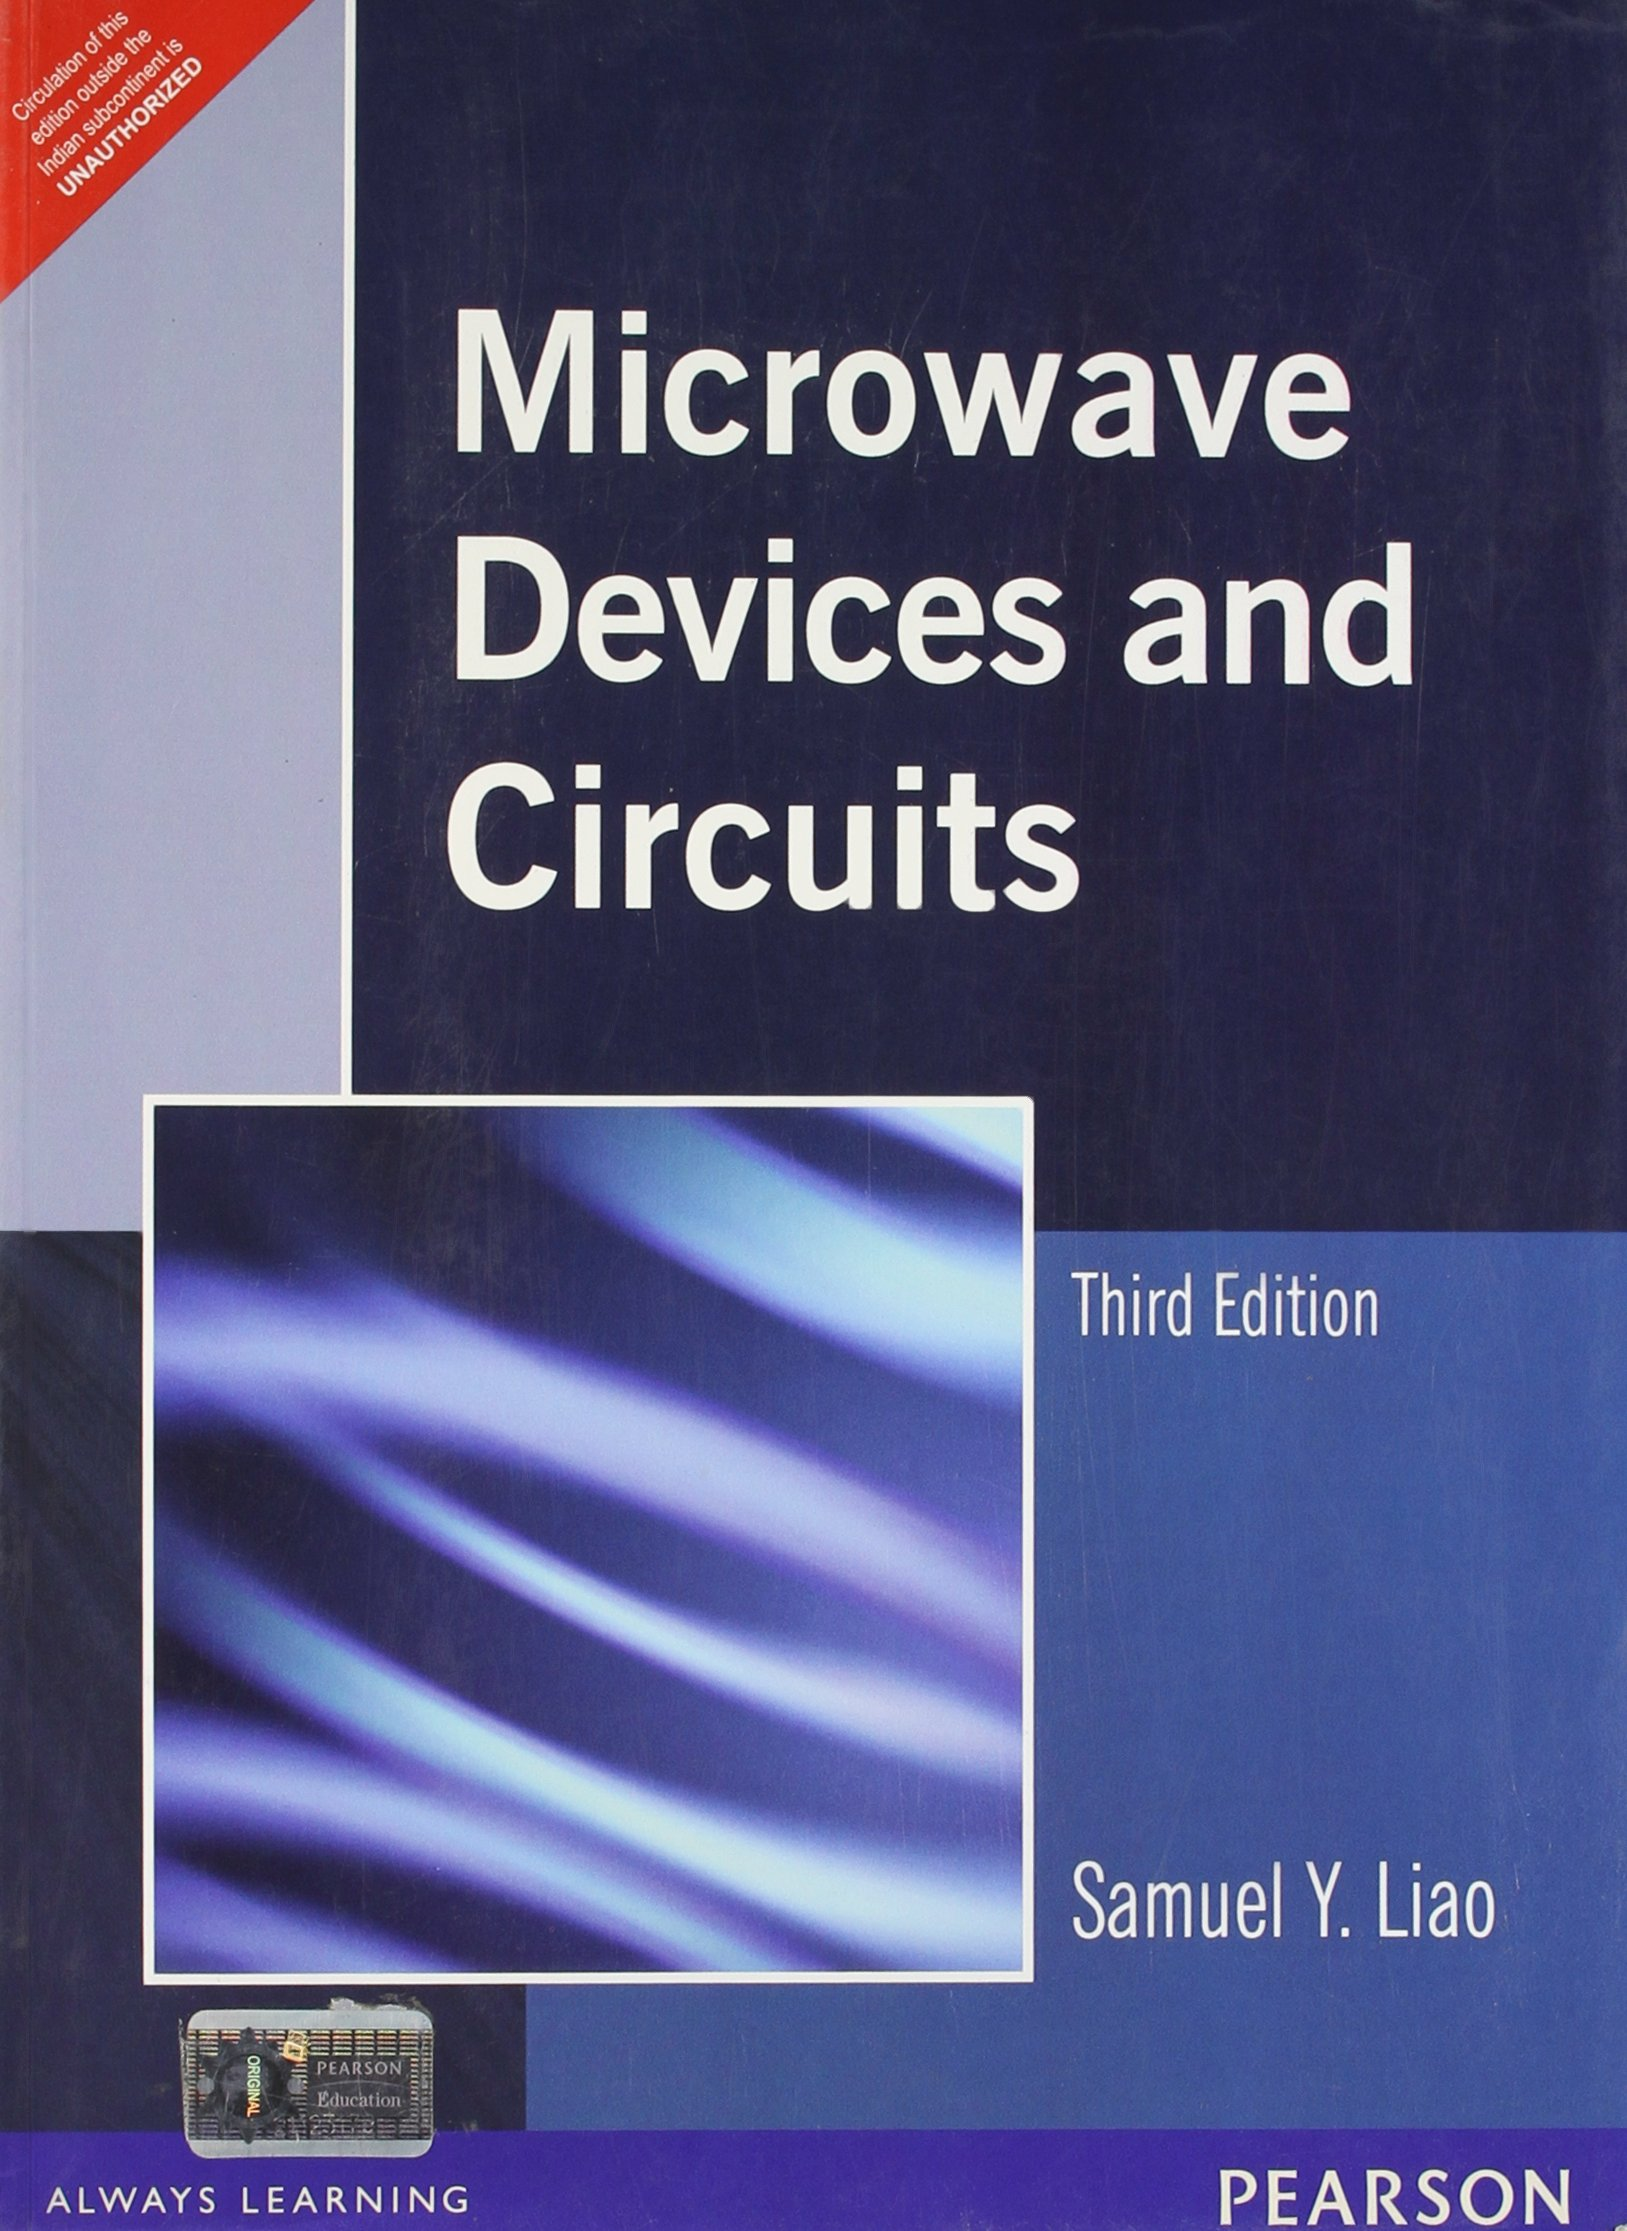 Buy Microwave Devices And Circuits 3e Book Online At Low Prices In Electric Circuit App For Windows The Store India Reviews Ratings